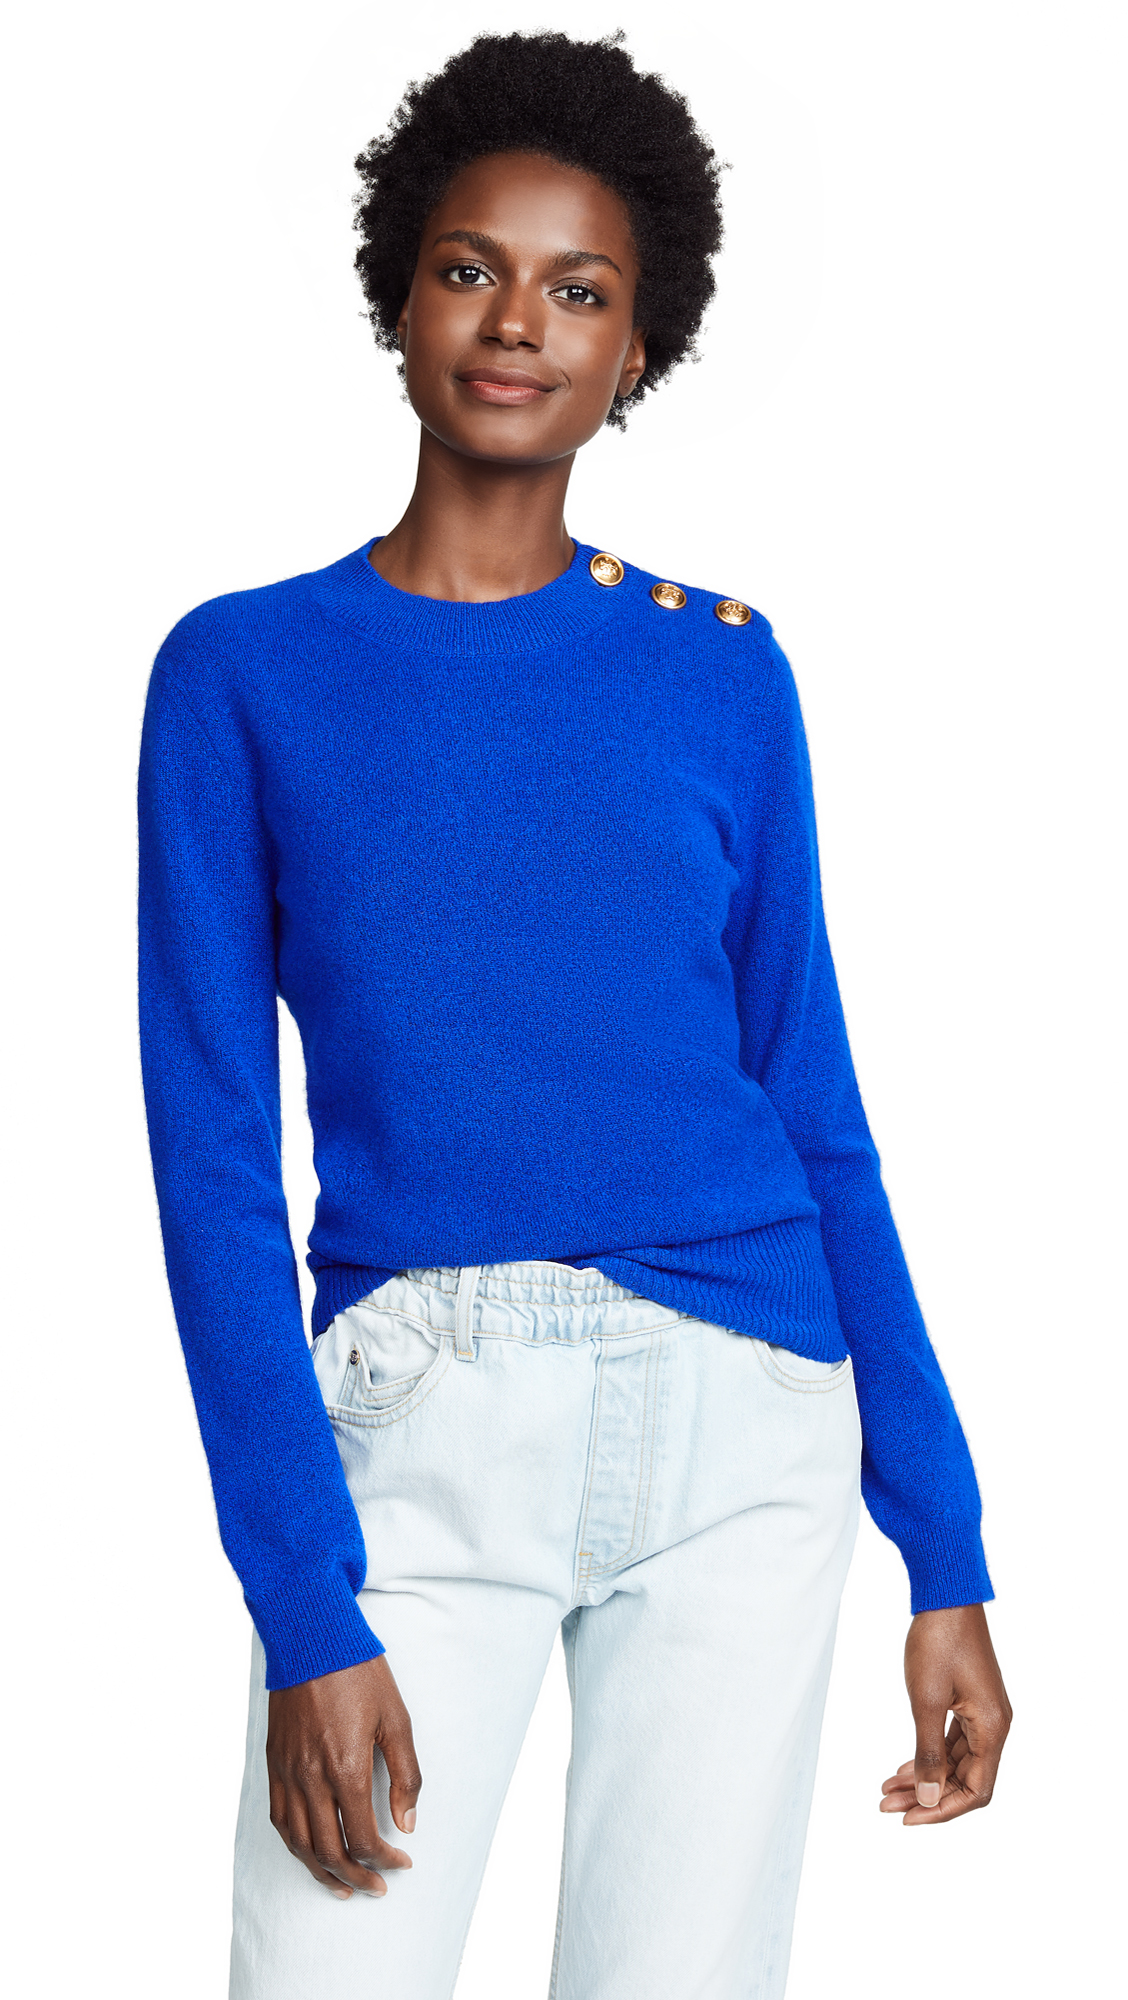 Tory Burch Sylvia Sweater In Majestic Blue